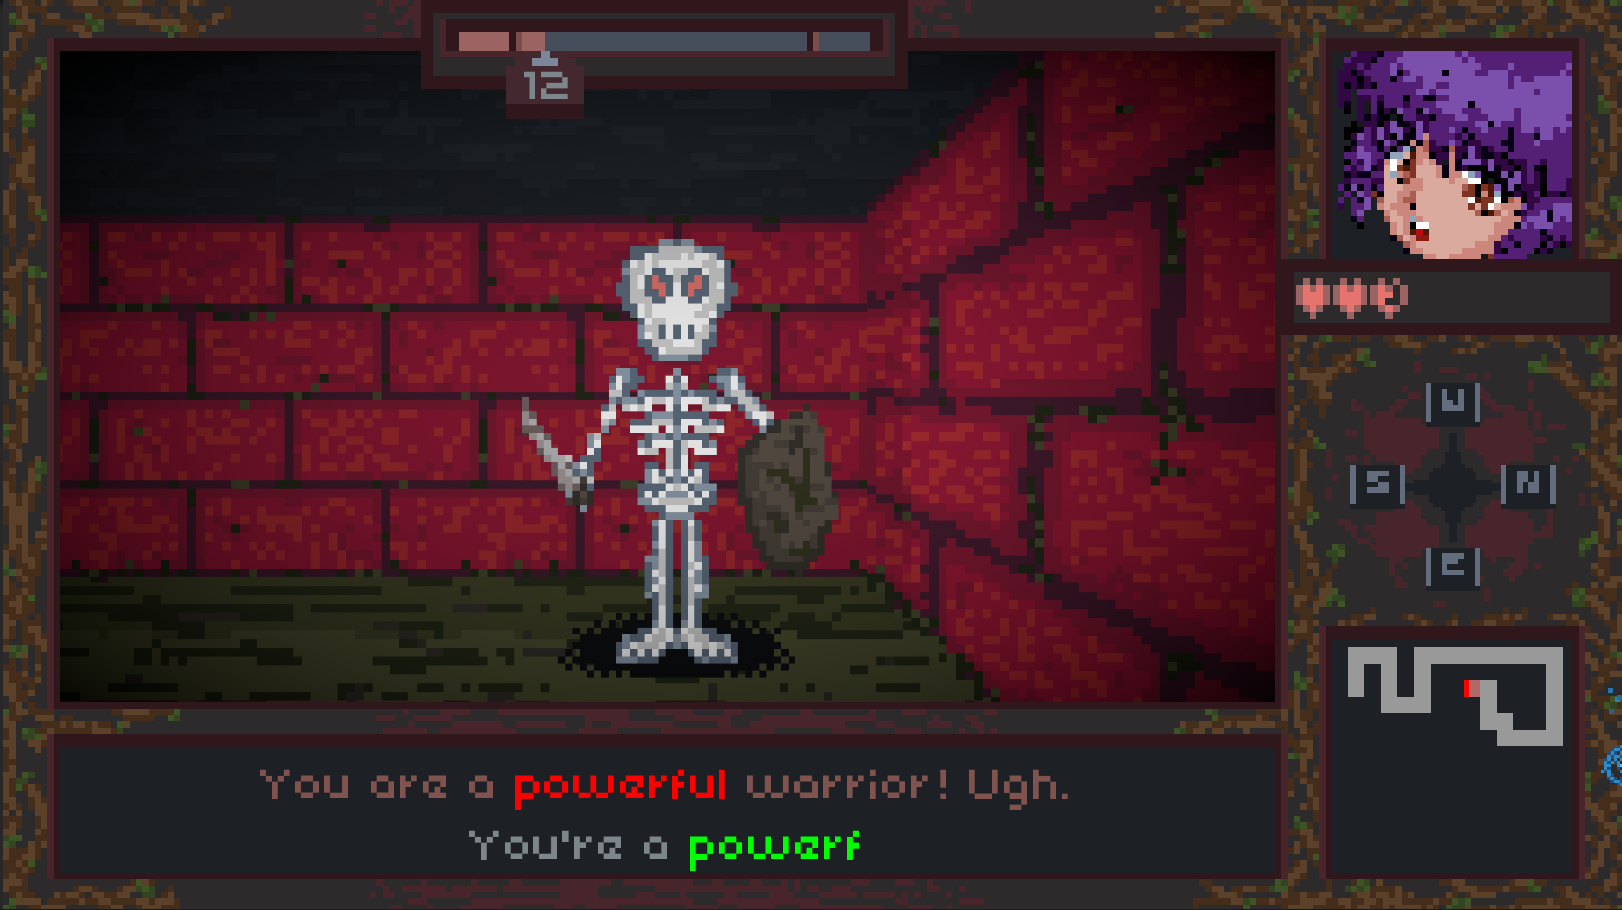 Skeleton on screen. Halfway through typing the attack 'You are a powerful warrior! Ugh.'